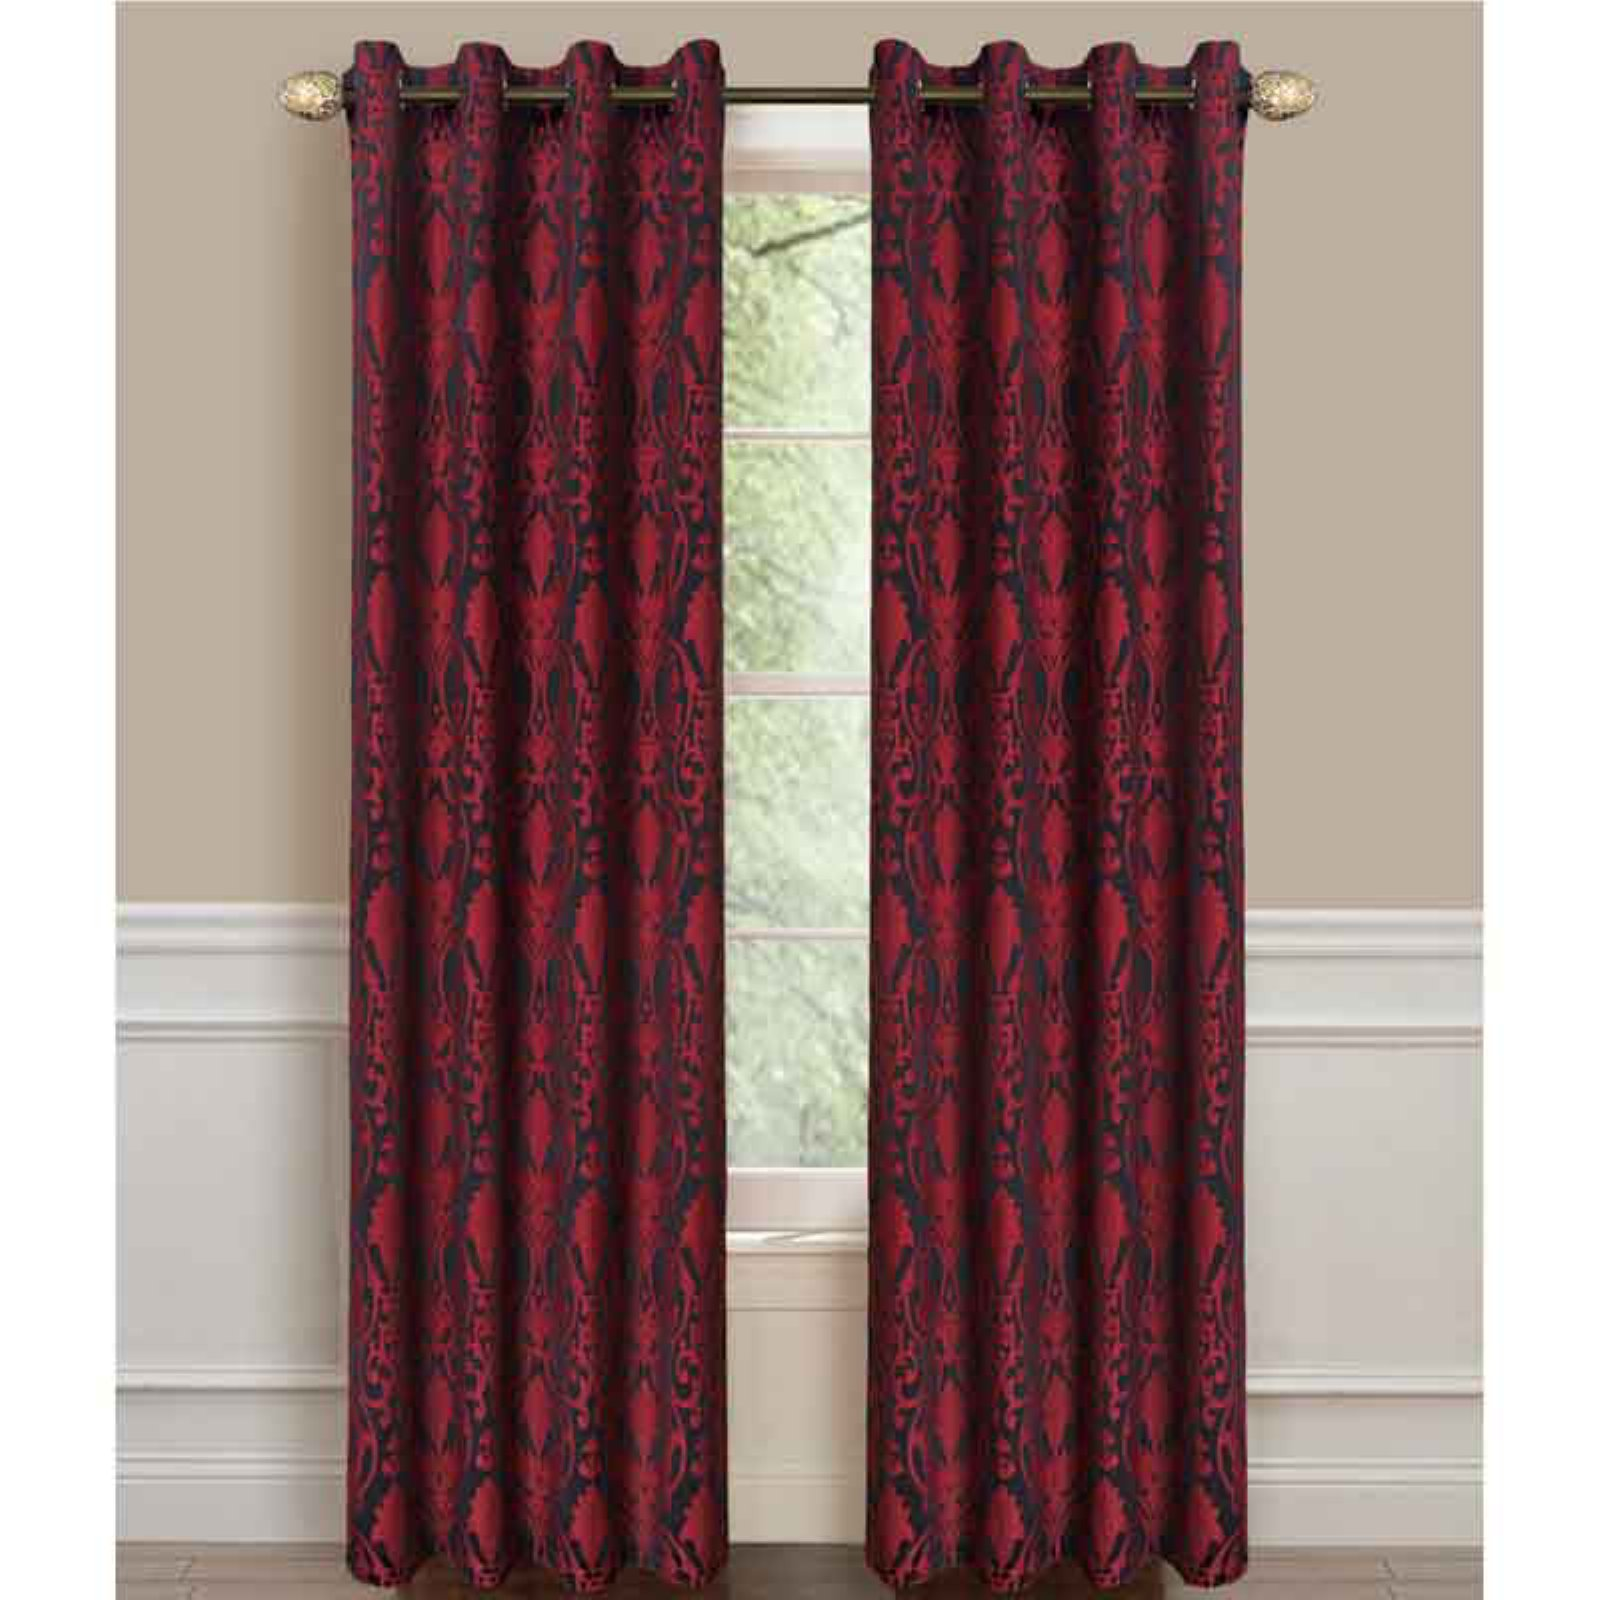 Dainty Home La Vista Room Darkening Window Curtain Panel